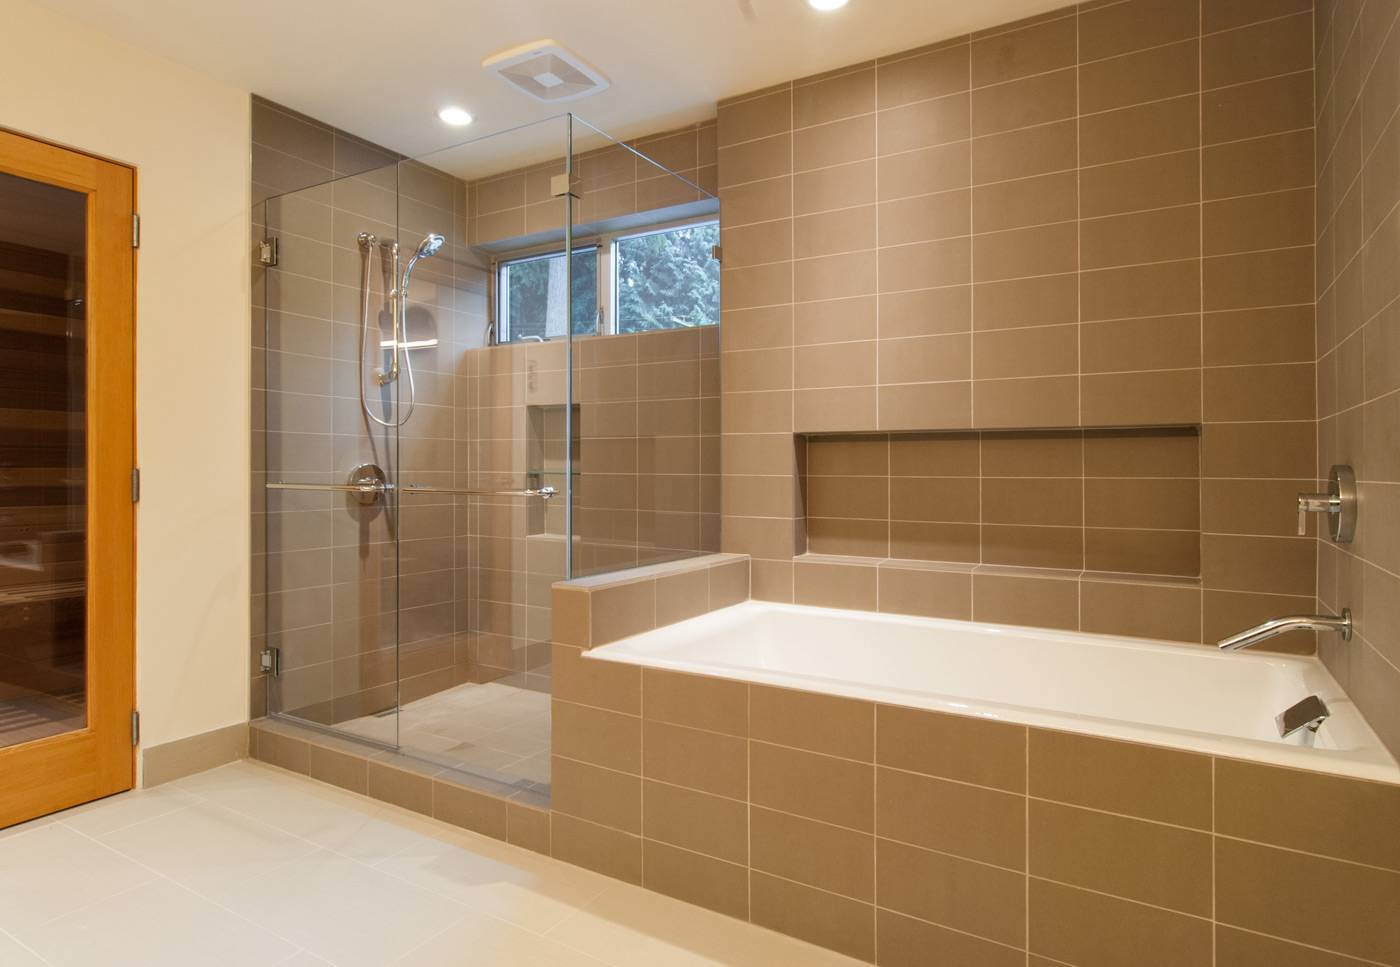 Tamano Baño Minusvalidos:Bathroom Shower Tile Ideas for Walls